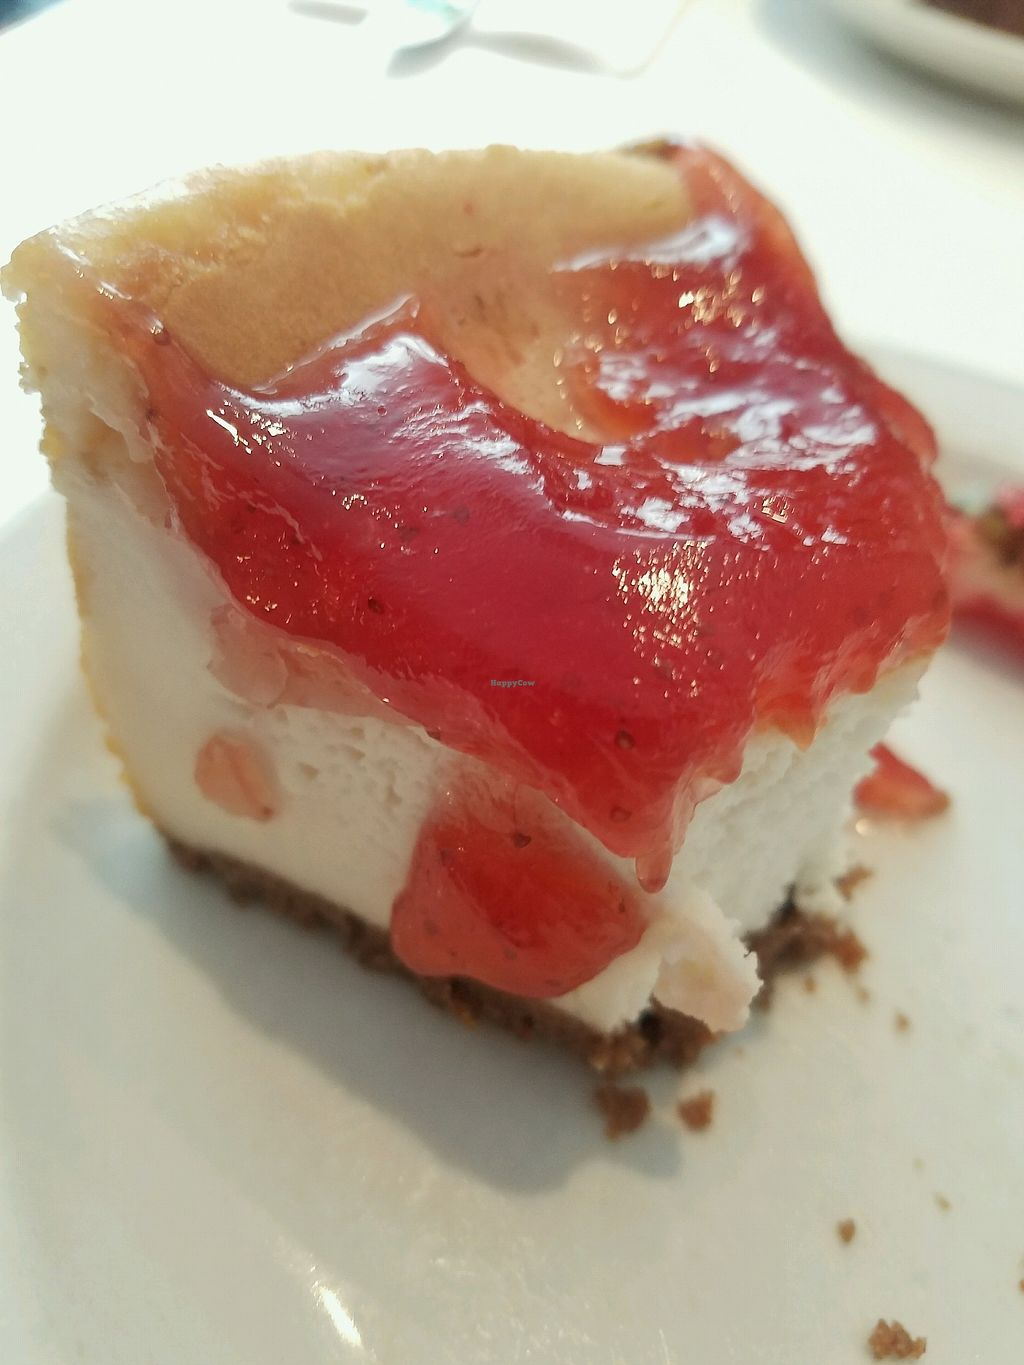 """Photo of Peacefood Cafe - Downtown  by <a href=""""/members/profile/benthere"""">benthere</a> <br/>Mostly eaten strawberry cheesecake. Sooo amazing!! <br/> October 5, 2017  - <a href='/contact/abuse/image/37453/312087'>Report</a>"""